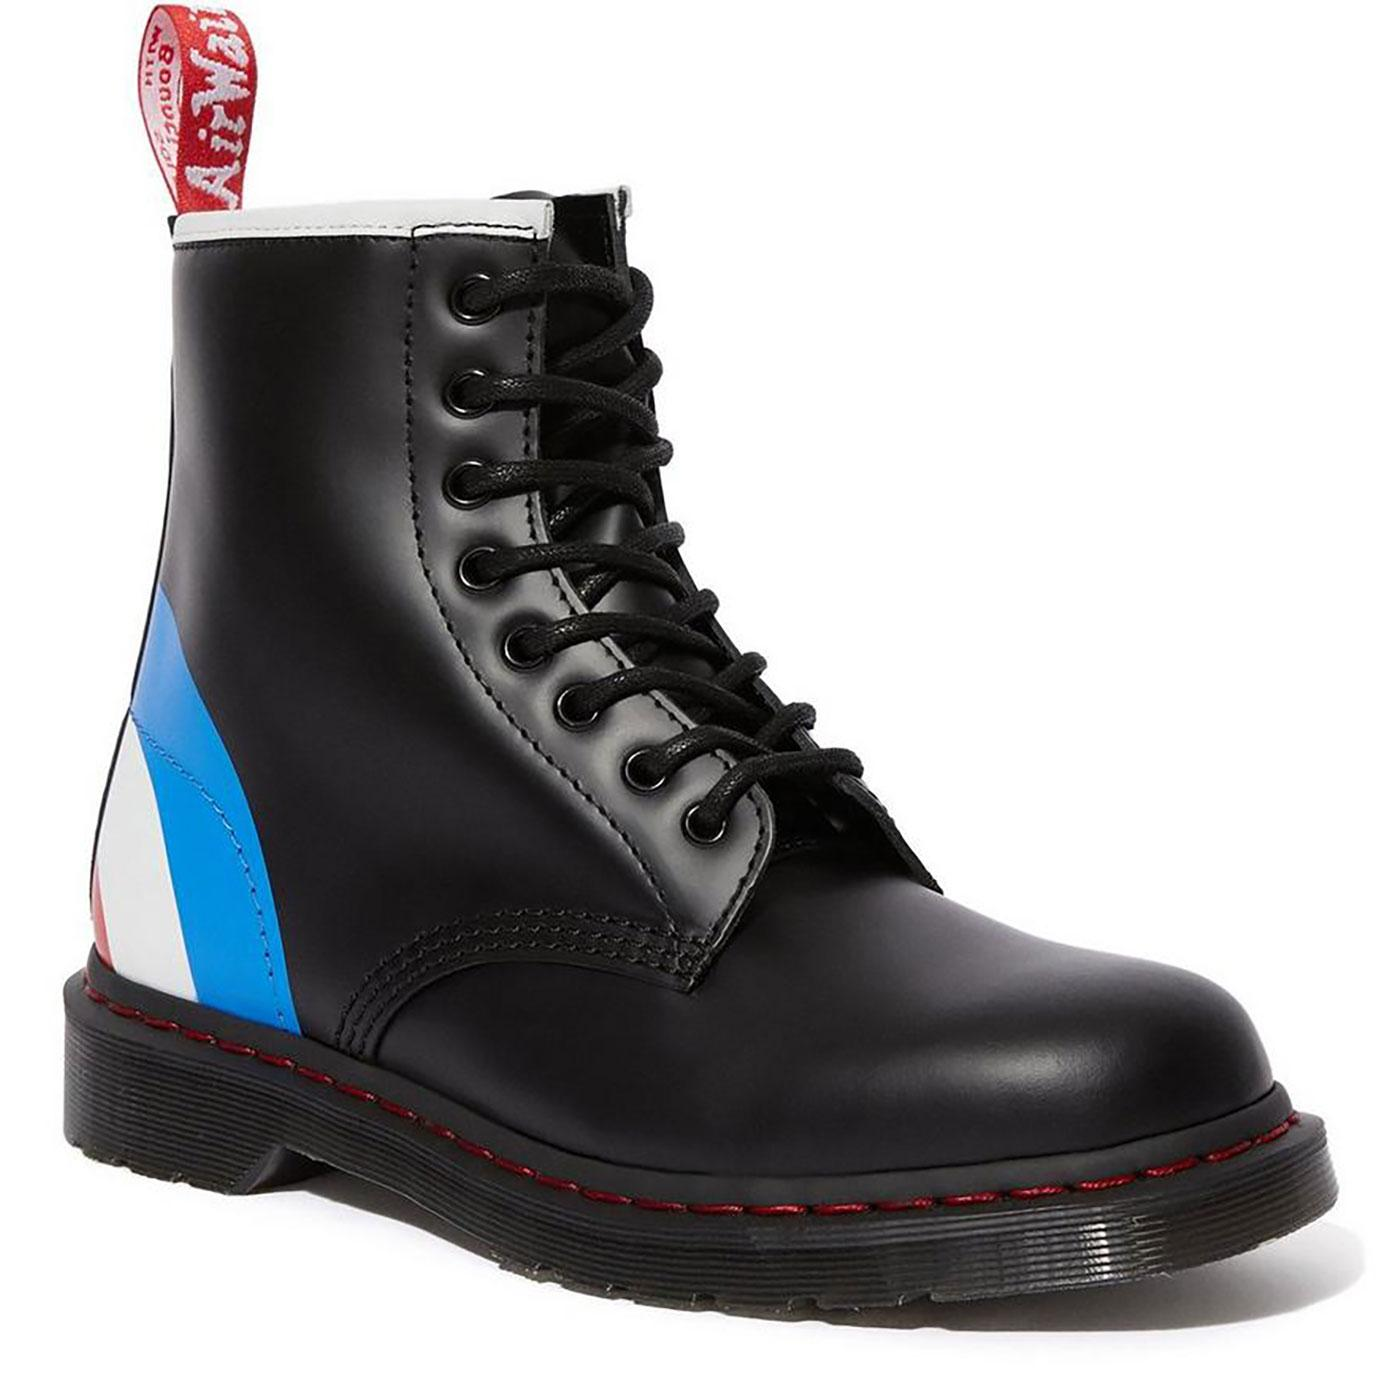 Dr MARTENS X THE WHO 1460 Mod Sixties Ankle Boots